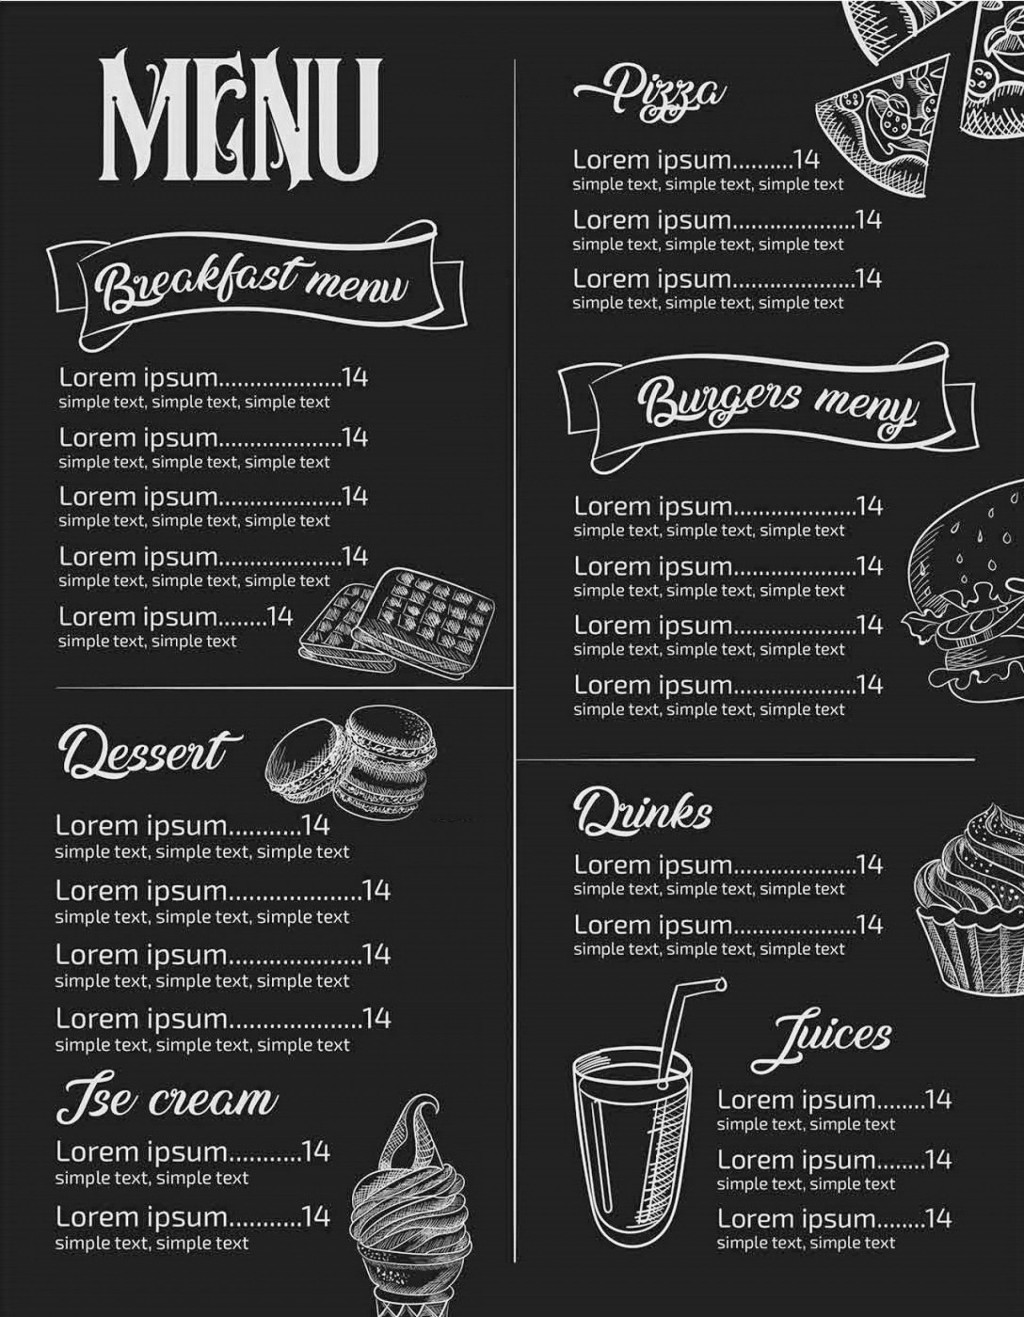 003 Remarkable Menu Template Free Download For Restaurant Picture  Word PsdLarge